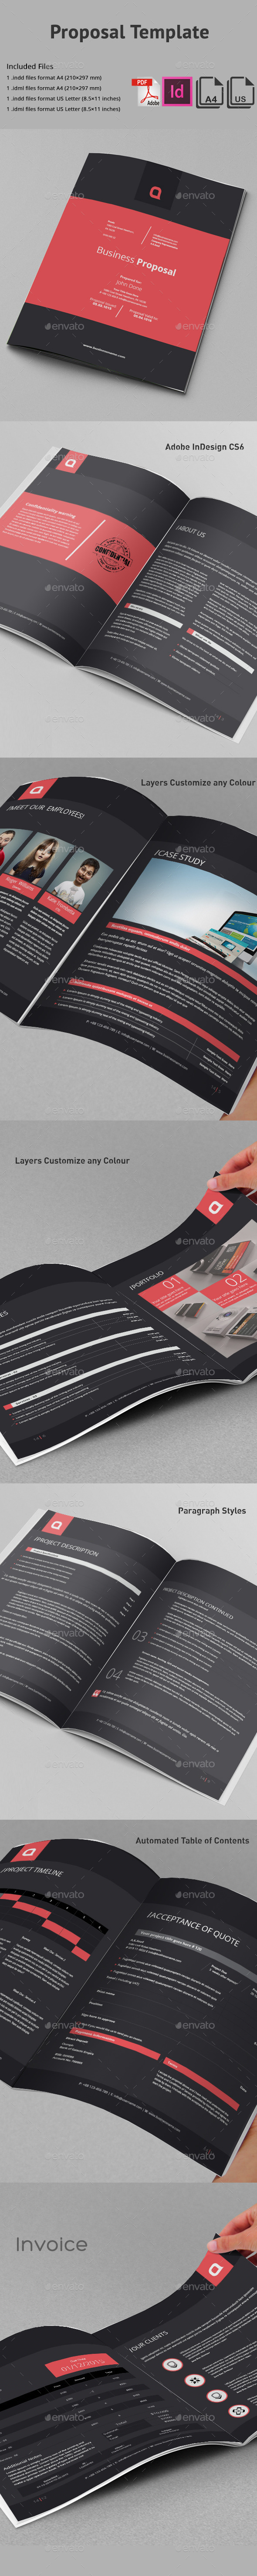 GraphicRiver Proposal Template 9068128